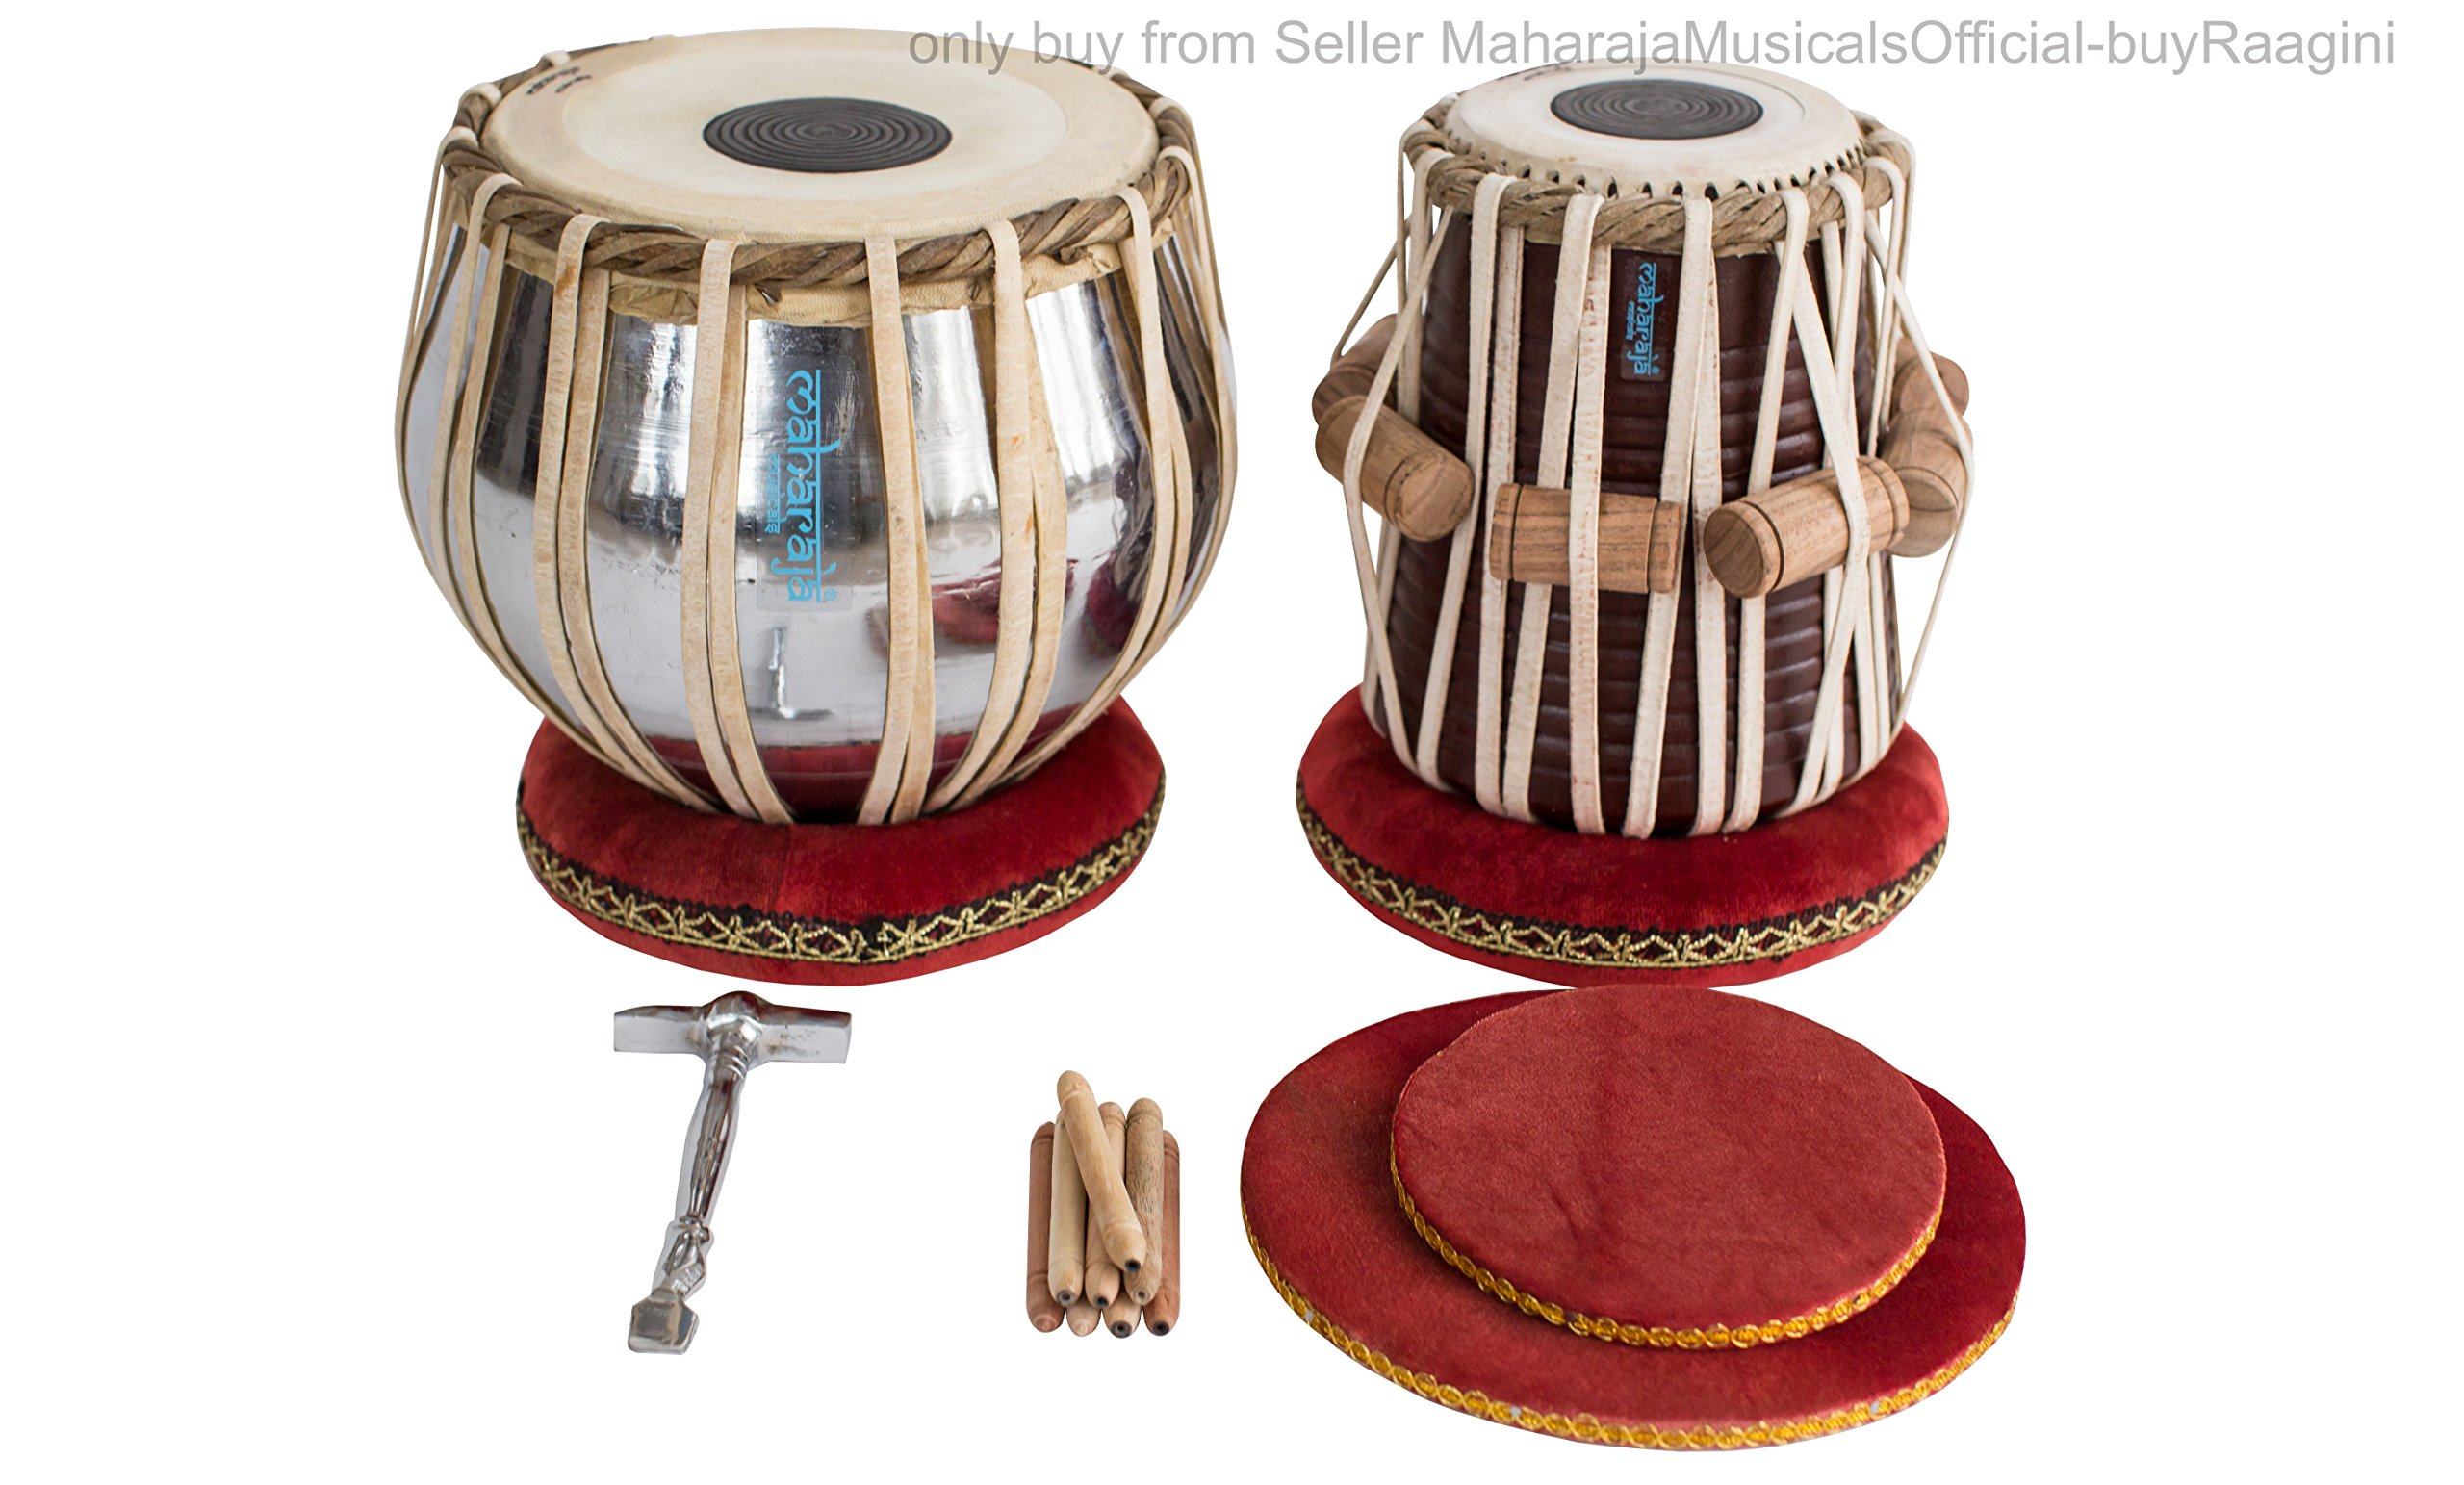 MAHARAJA Student Tabla Drum Set, Basic Tabla Set, Steel Bayan, Dayan with Book, Hammer, Cushions & Cover - Perfect Tablas for Students and Beginners on Budget (PDI-IB) Tabla Drums, Indian Hand Drums by Maharaja Musicals